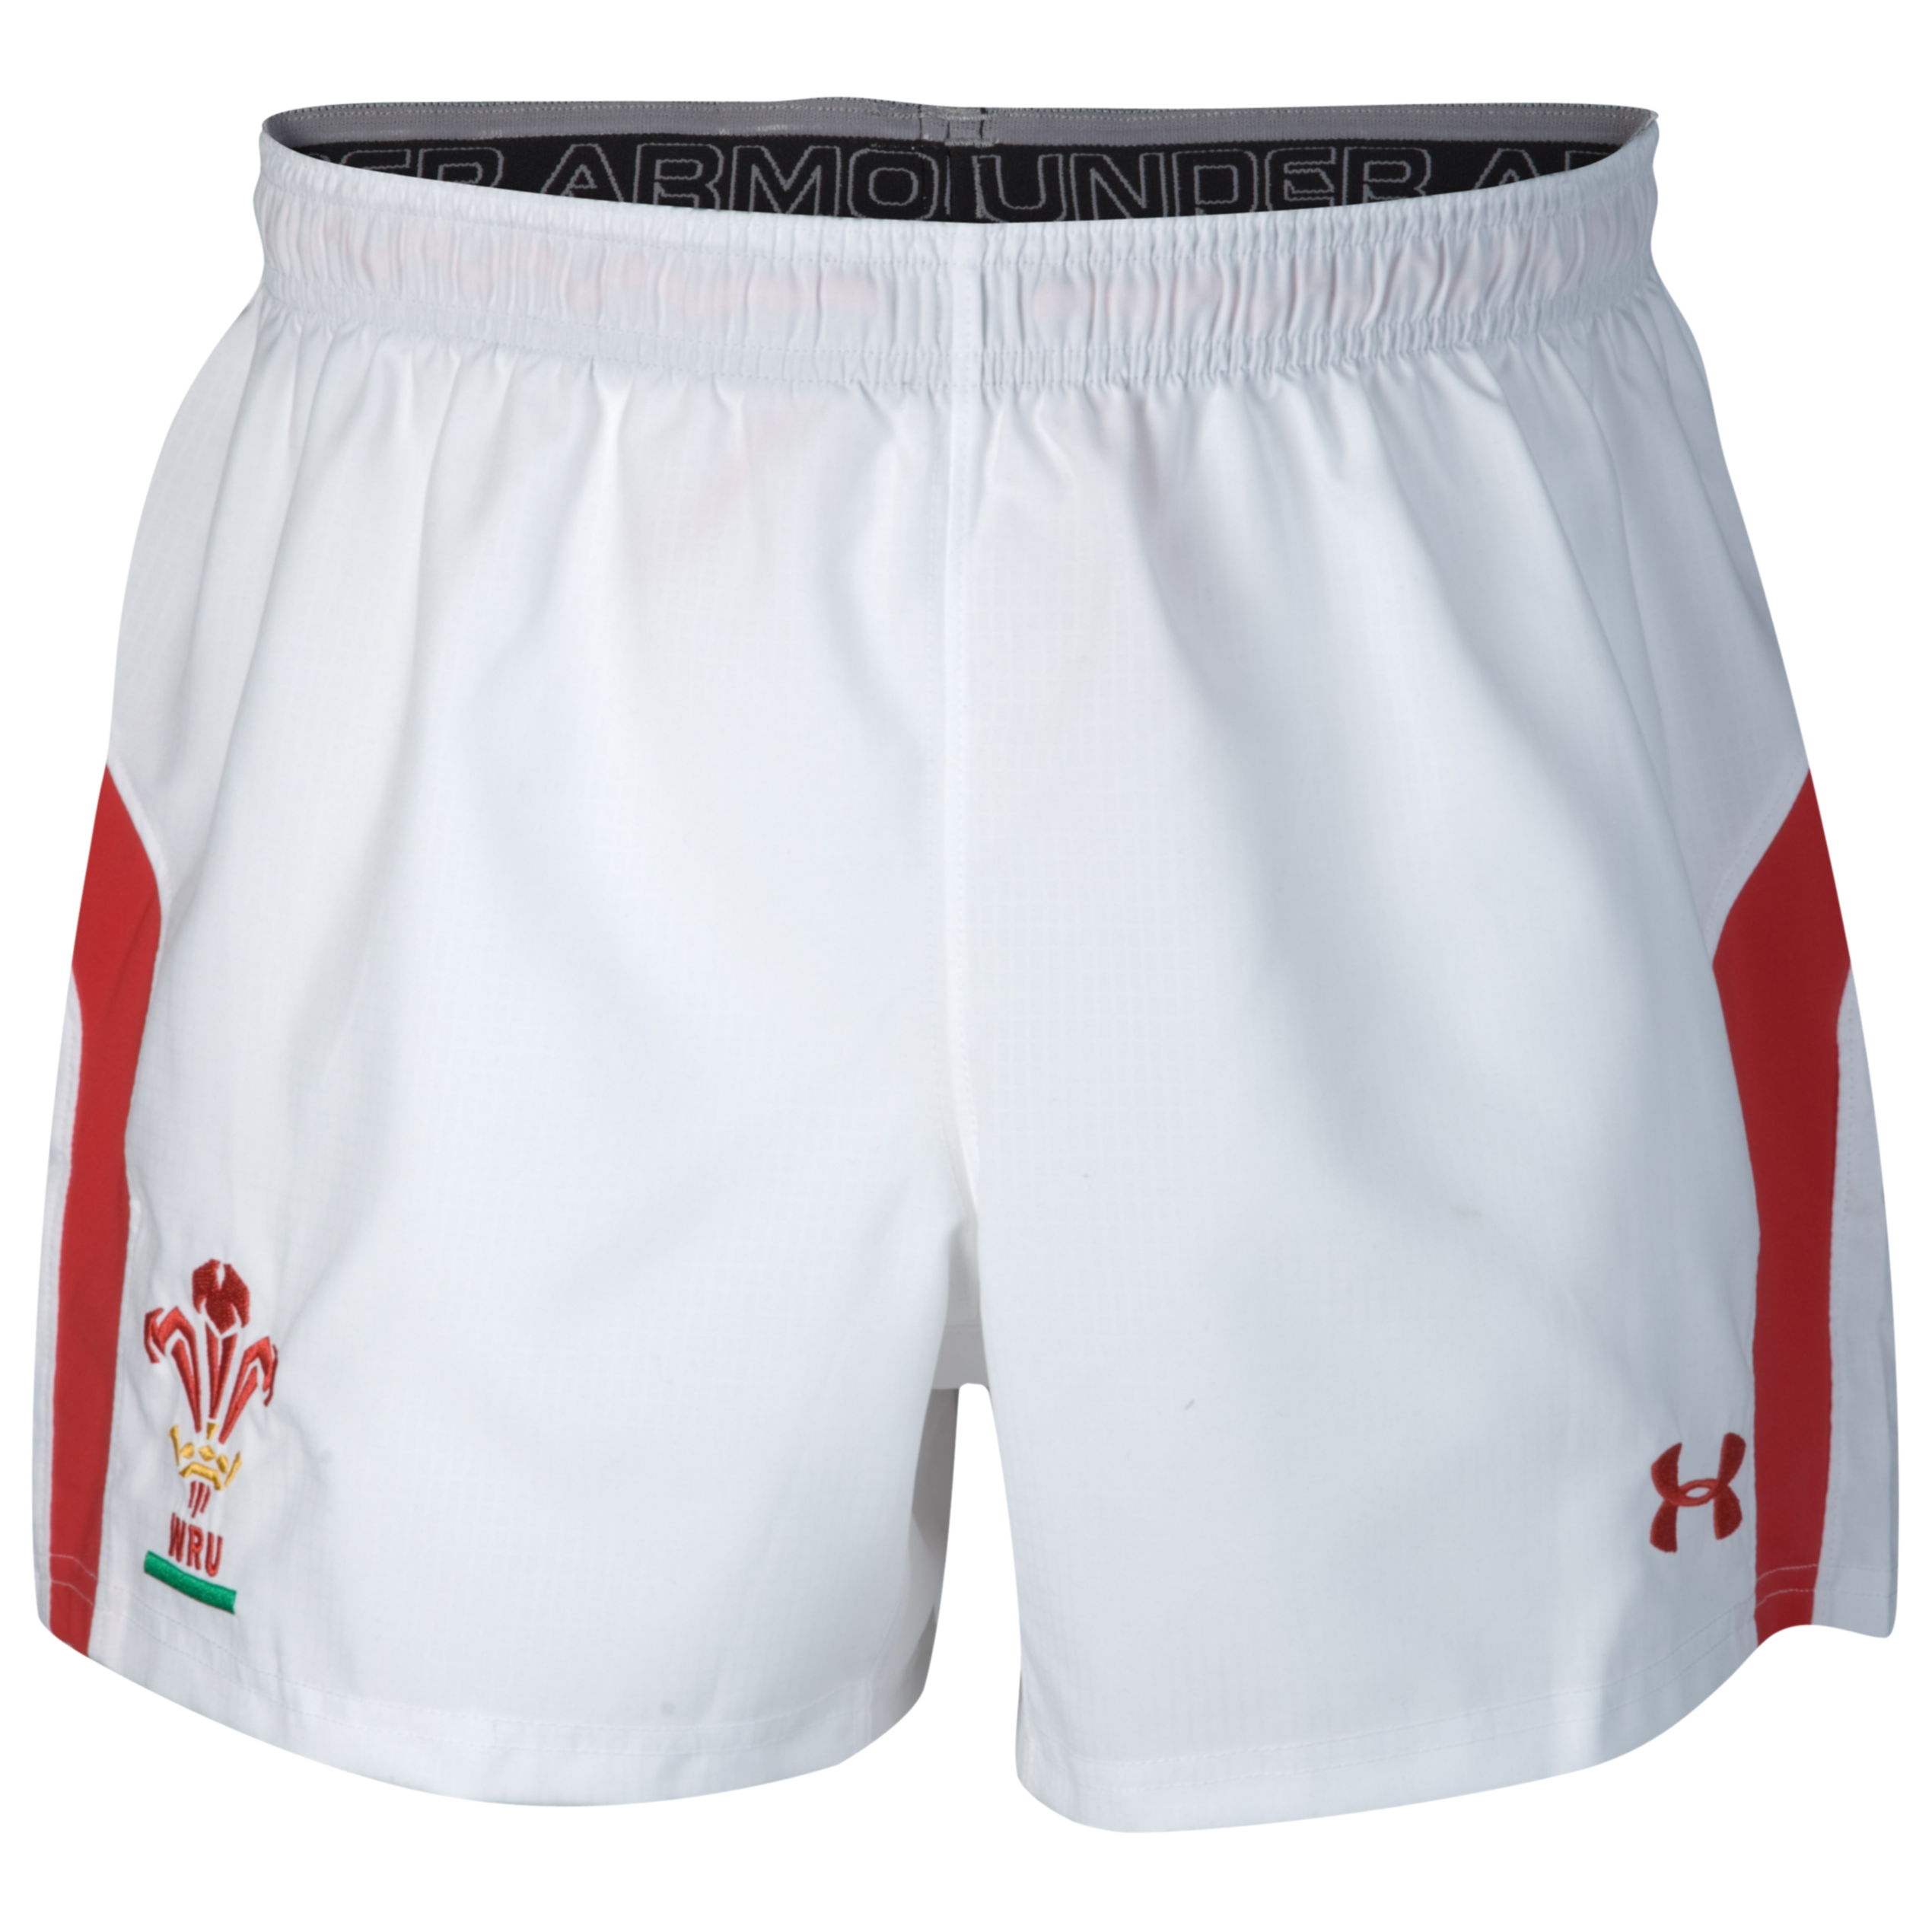 Wales Rugby Union Home Short 2011/13